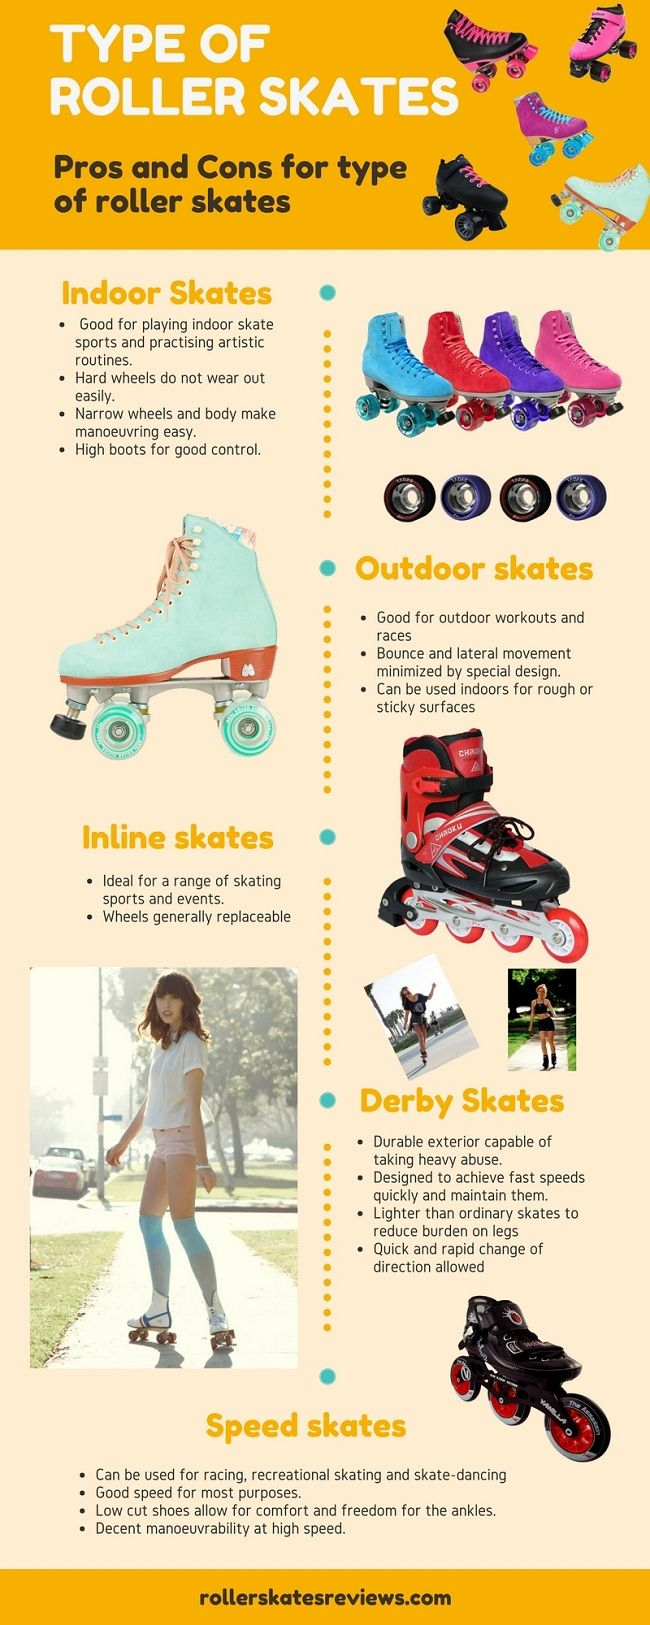 skates roller types different skating infographic cons skate pros workout wheels guide derby